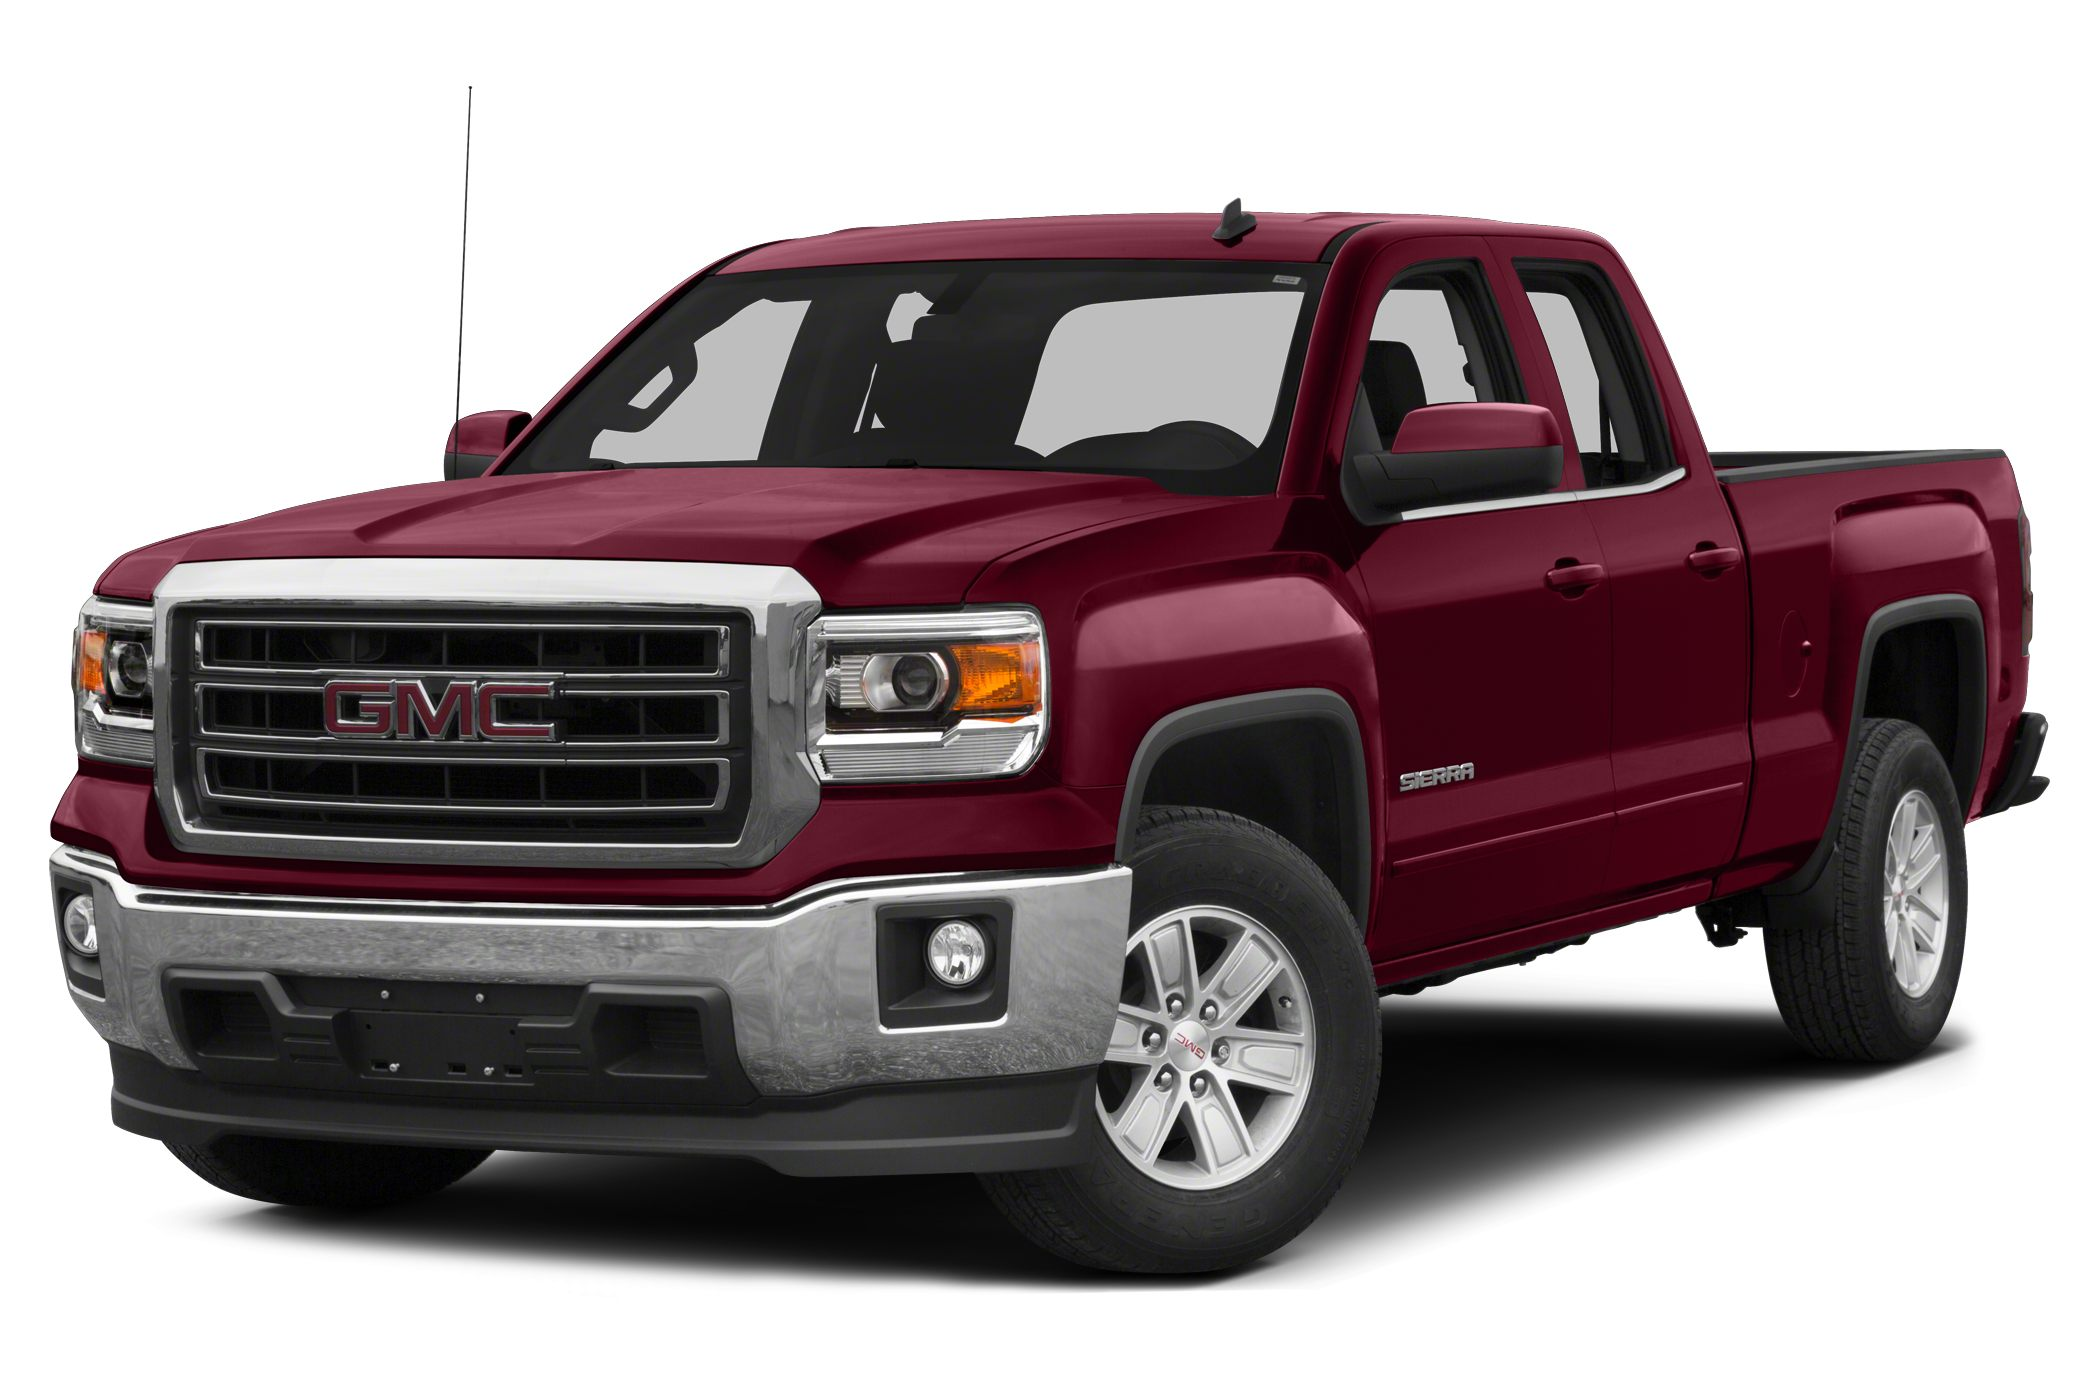 2015 GMC Sierra 1500 SLE Extended Cab Pickup for sale in Oconto for $42,750 with 2 miles.